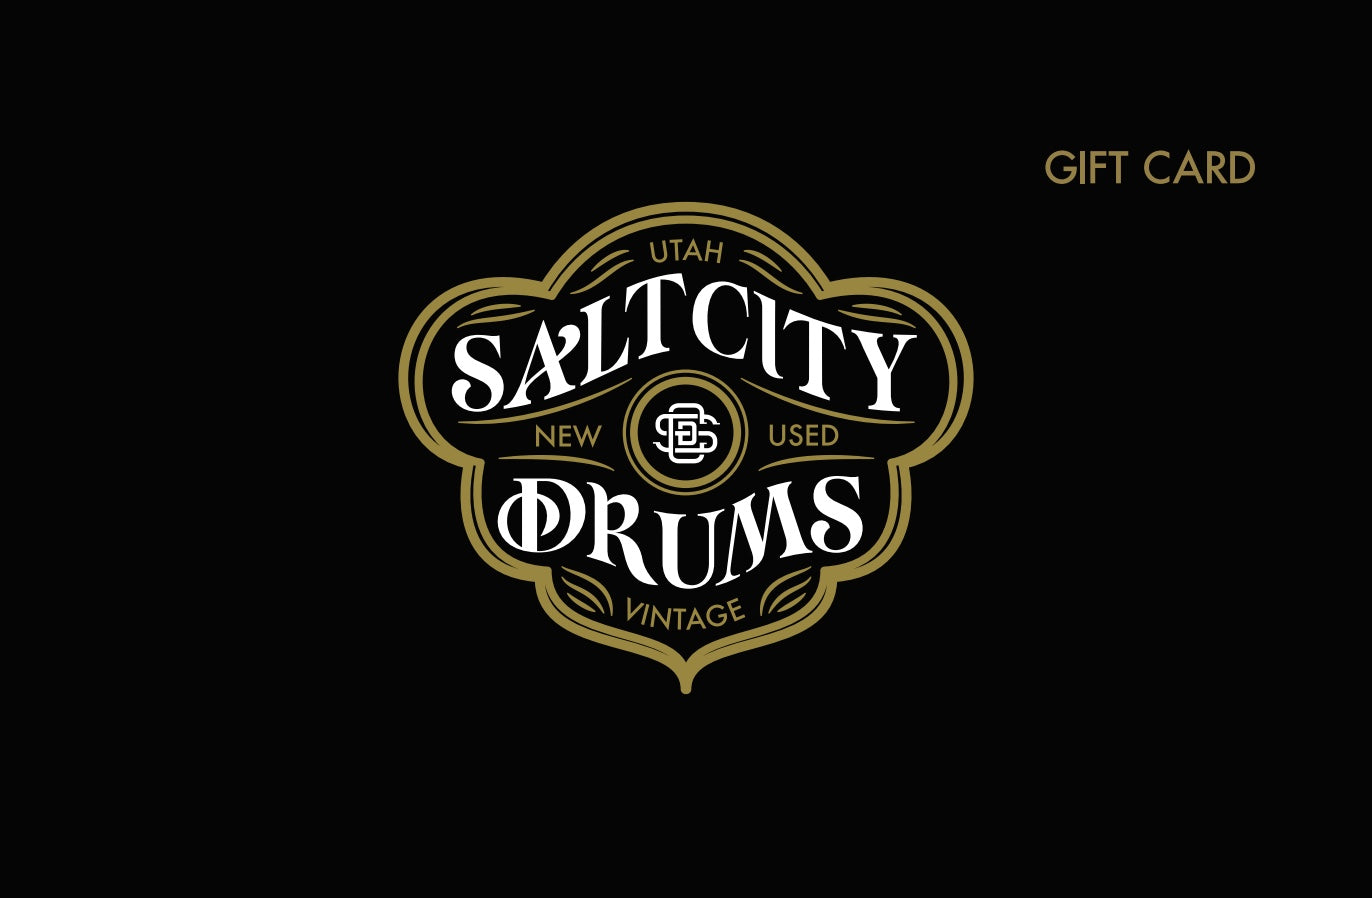 Salt City Drums Gift Card